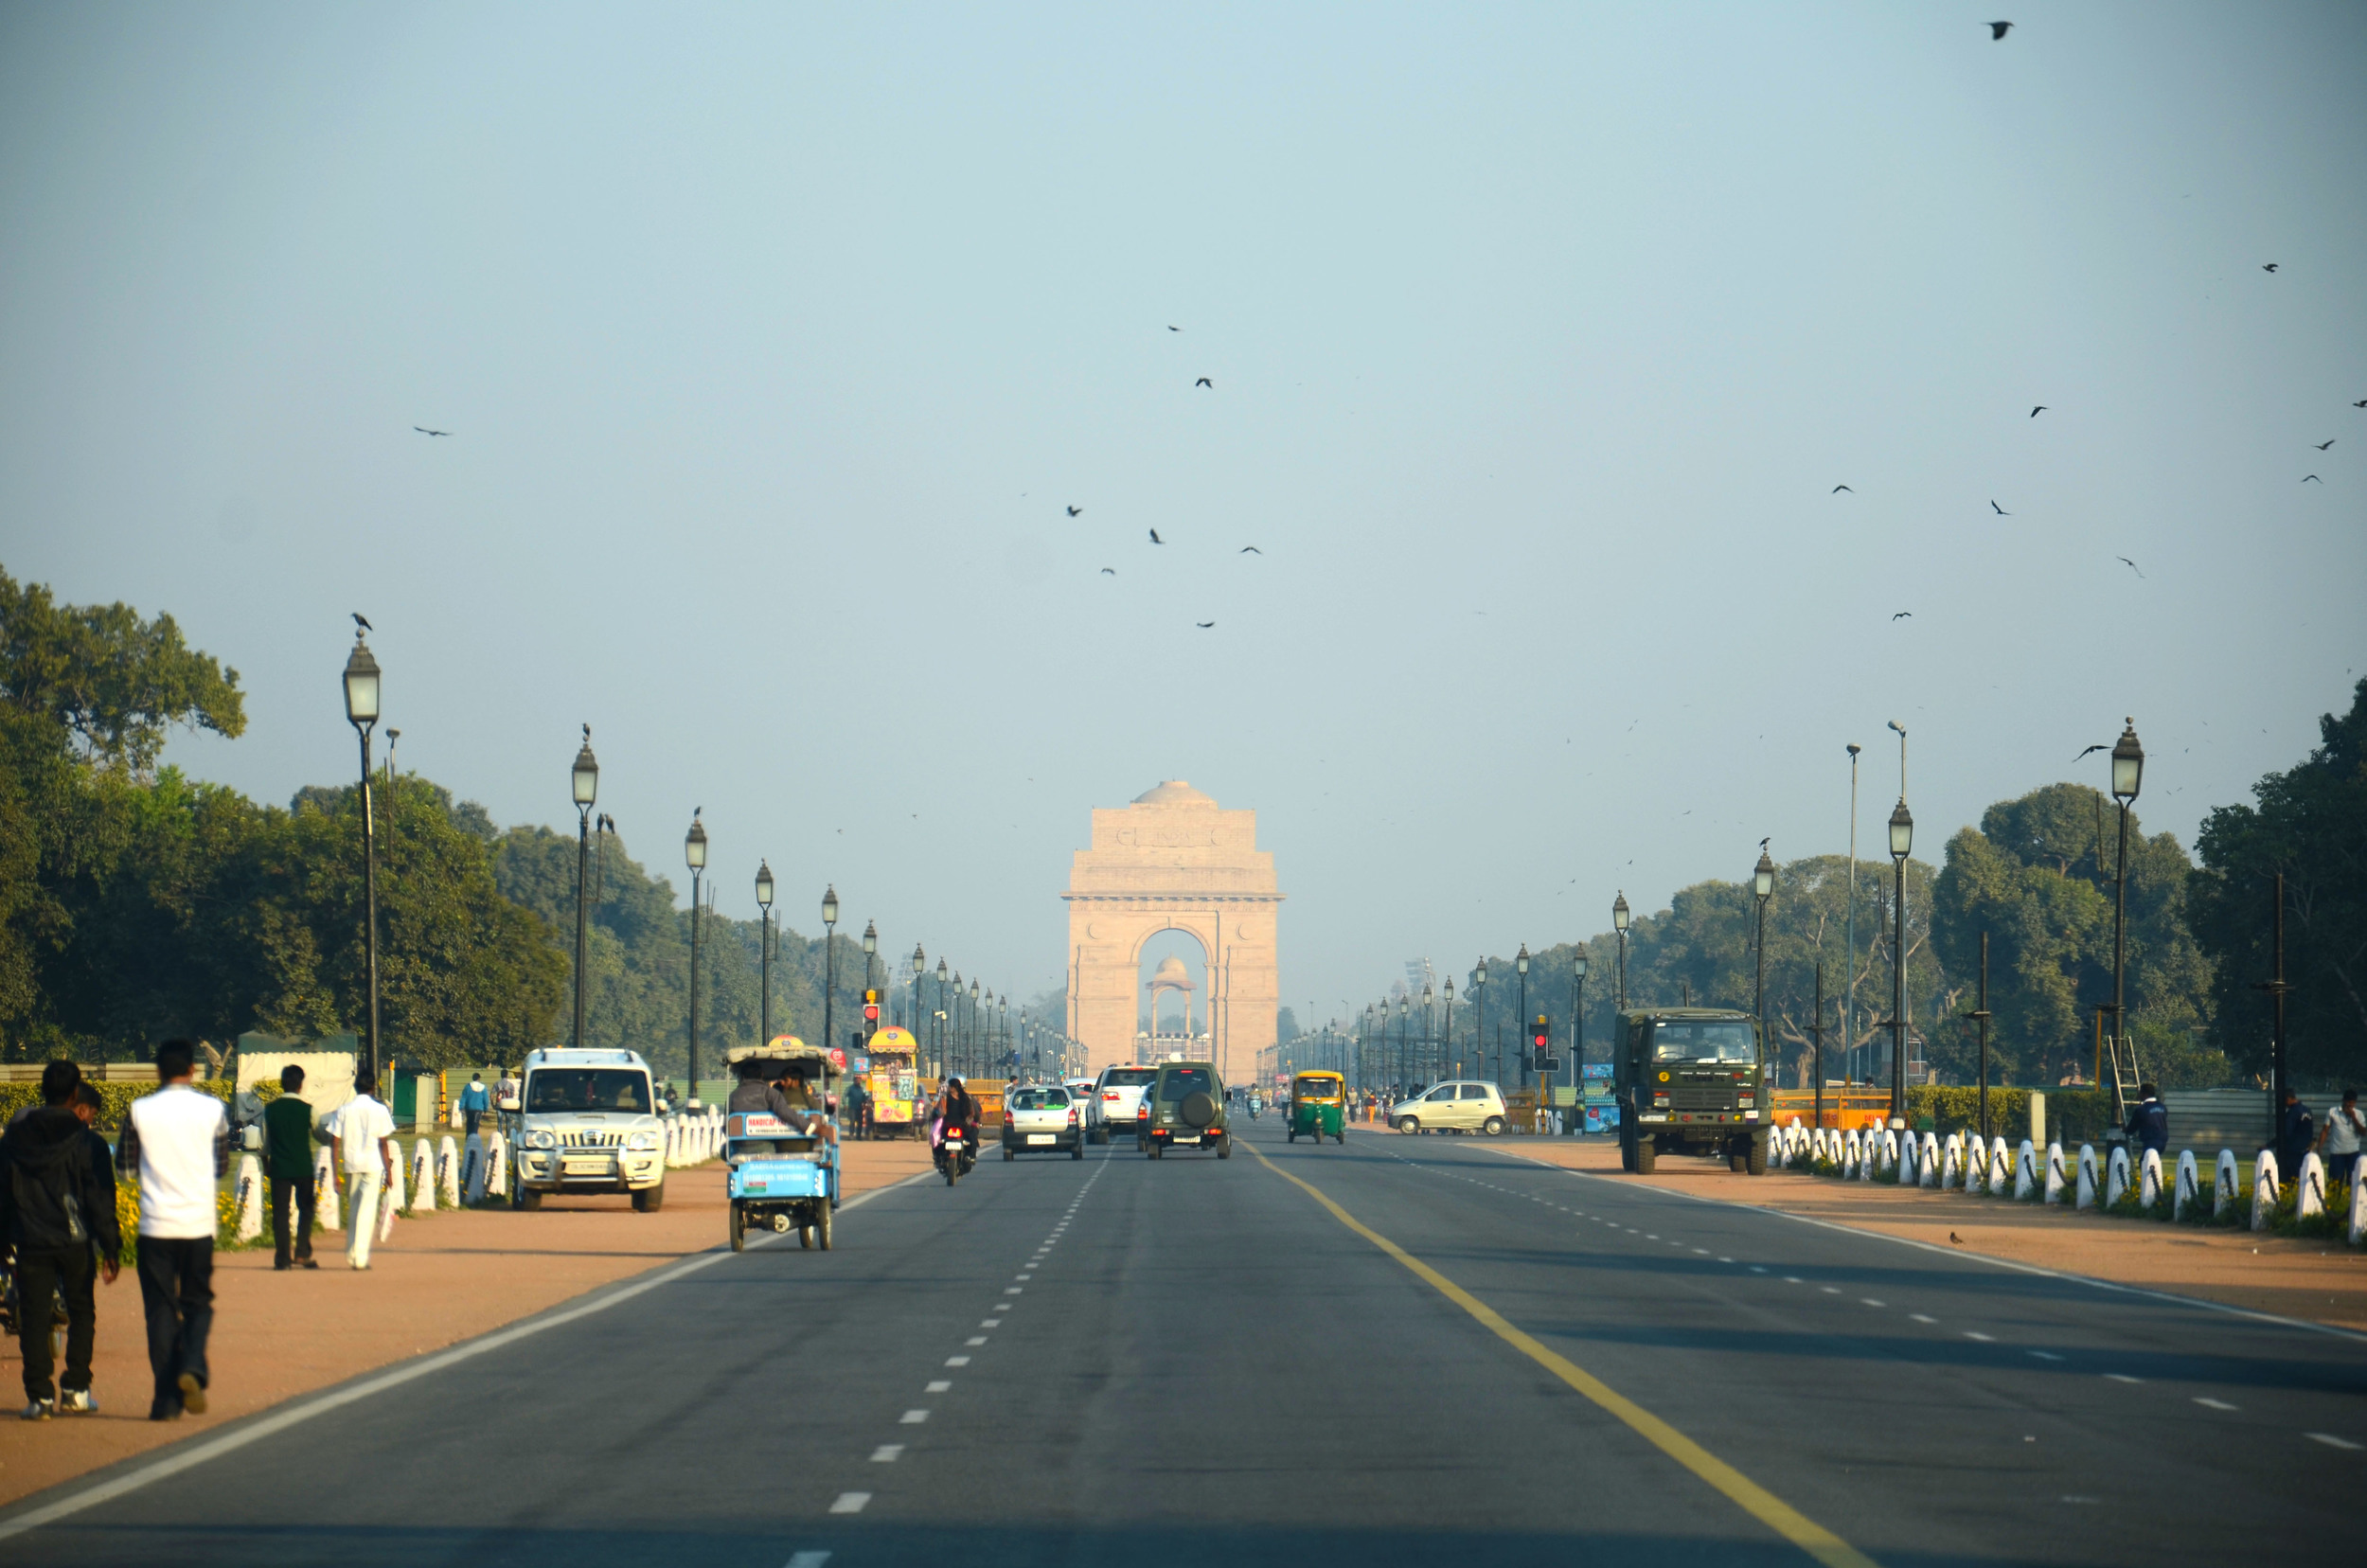 India Gate in the distance